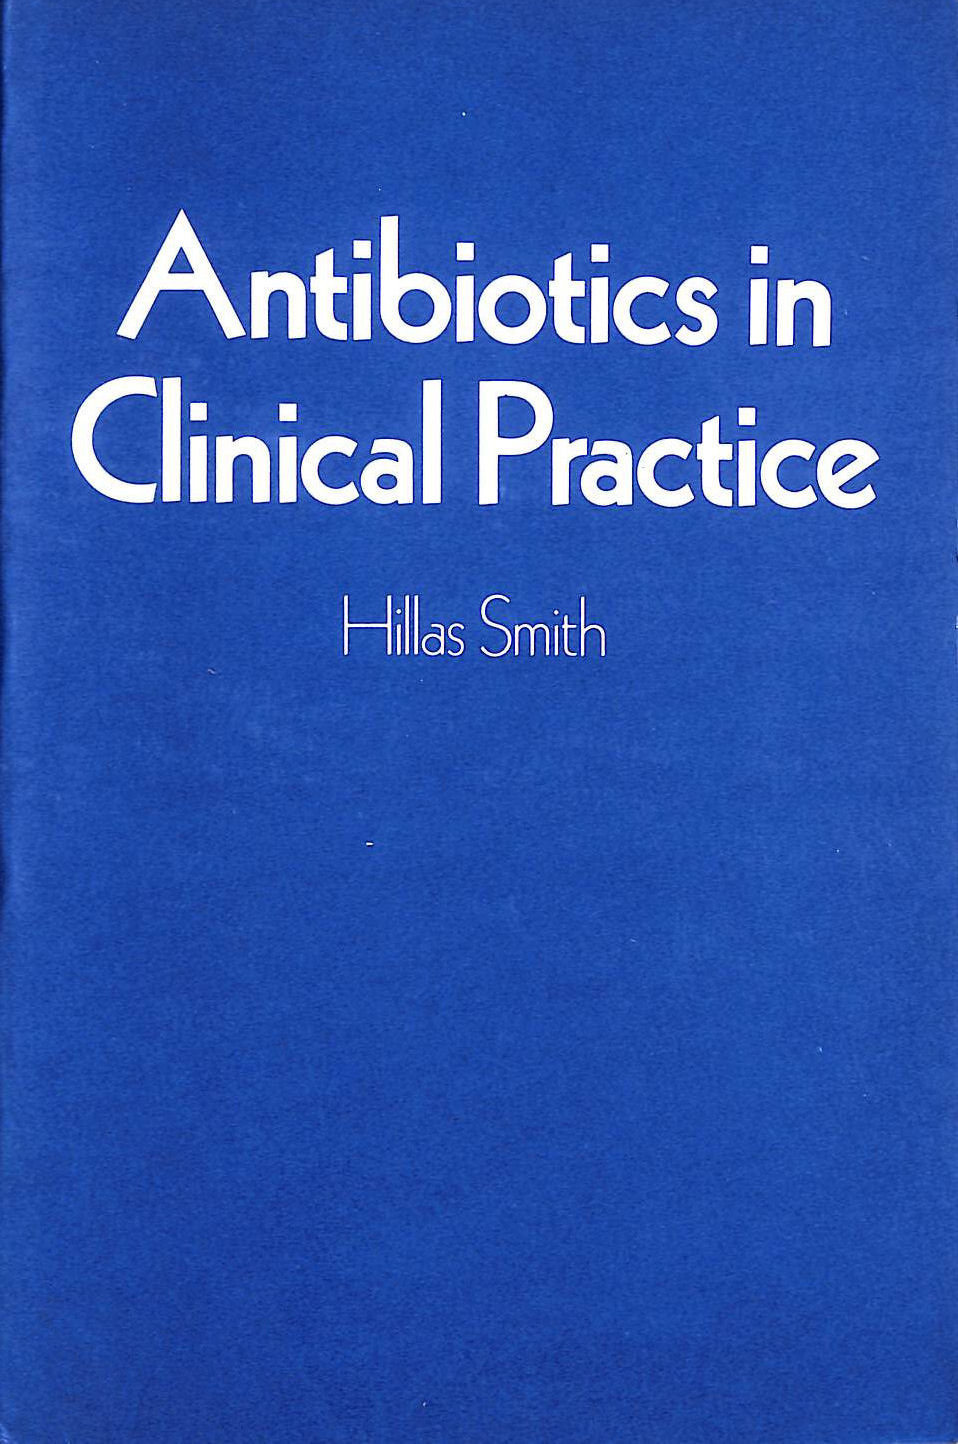 Image for Antibiotics in Clinical Practice